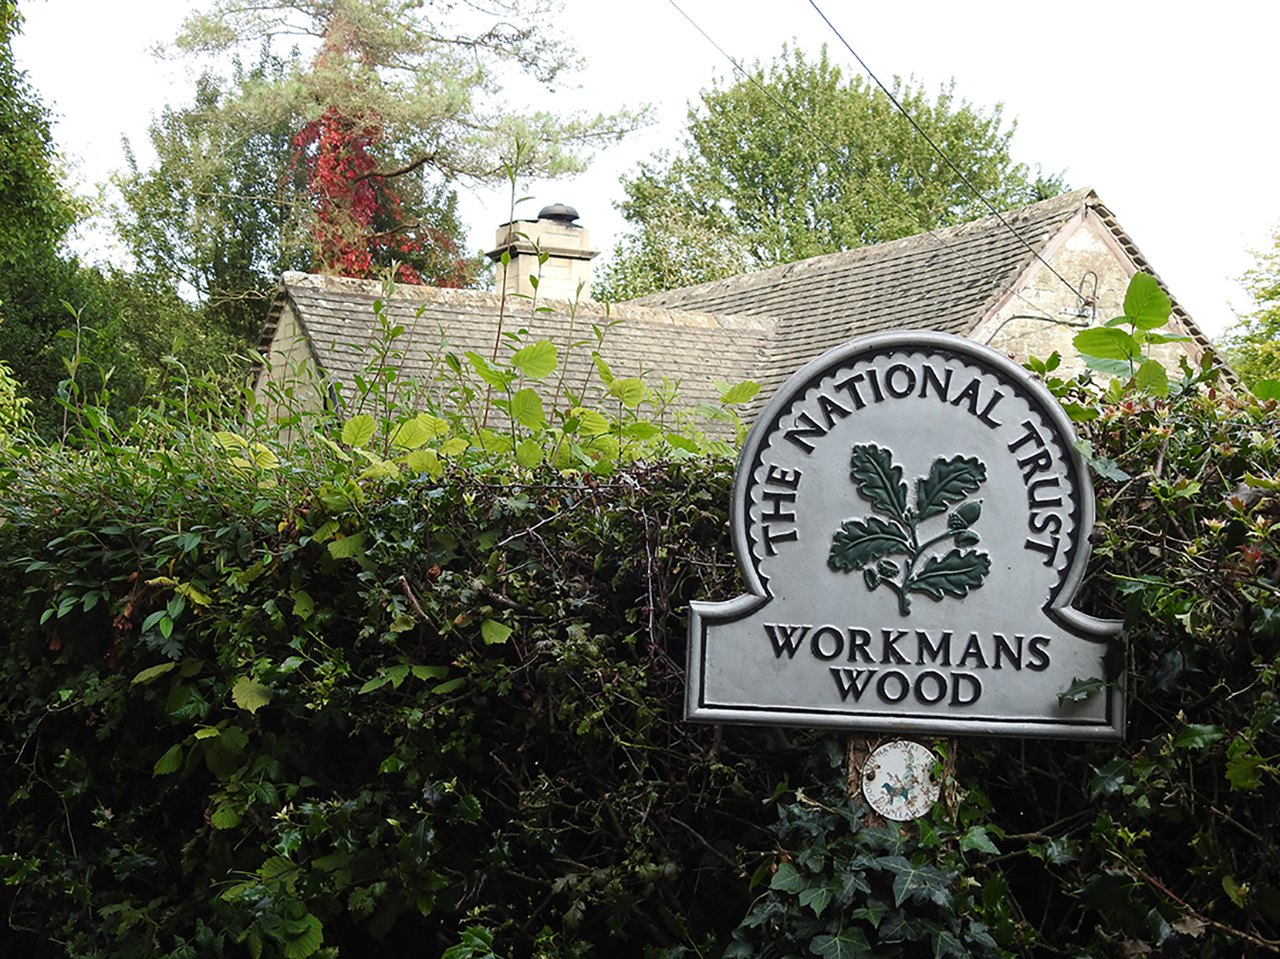 National Trust sign at entrance to Workmans Woods